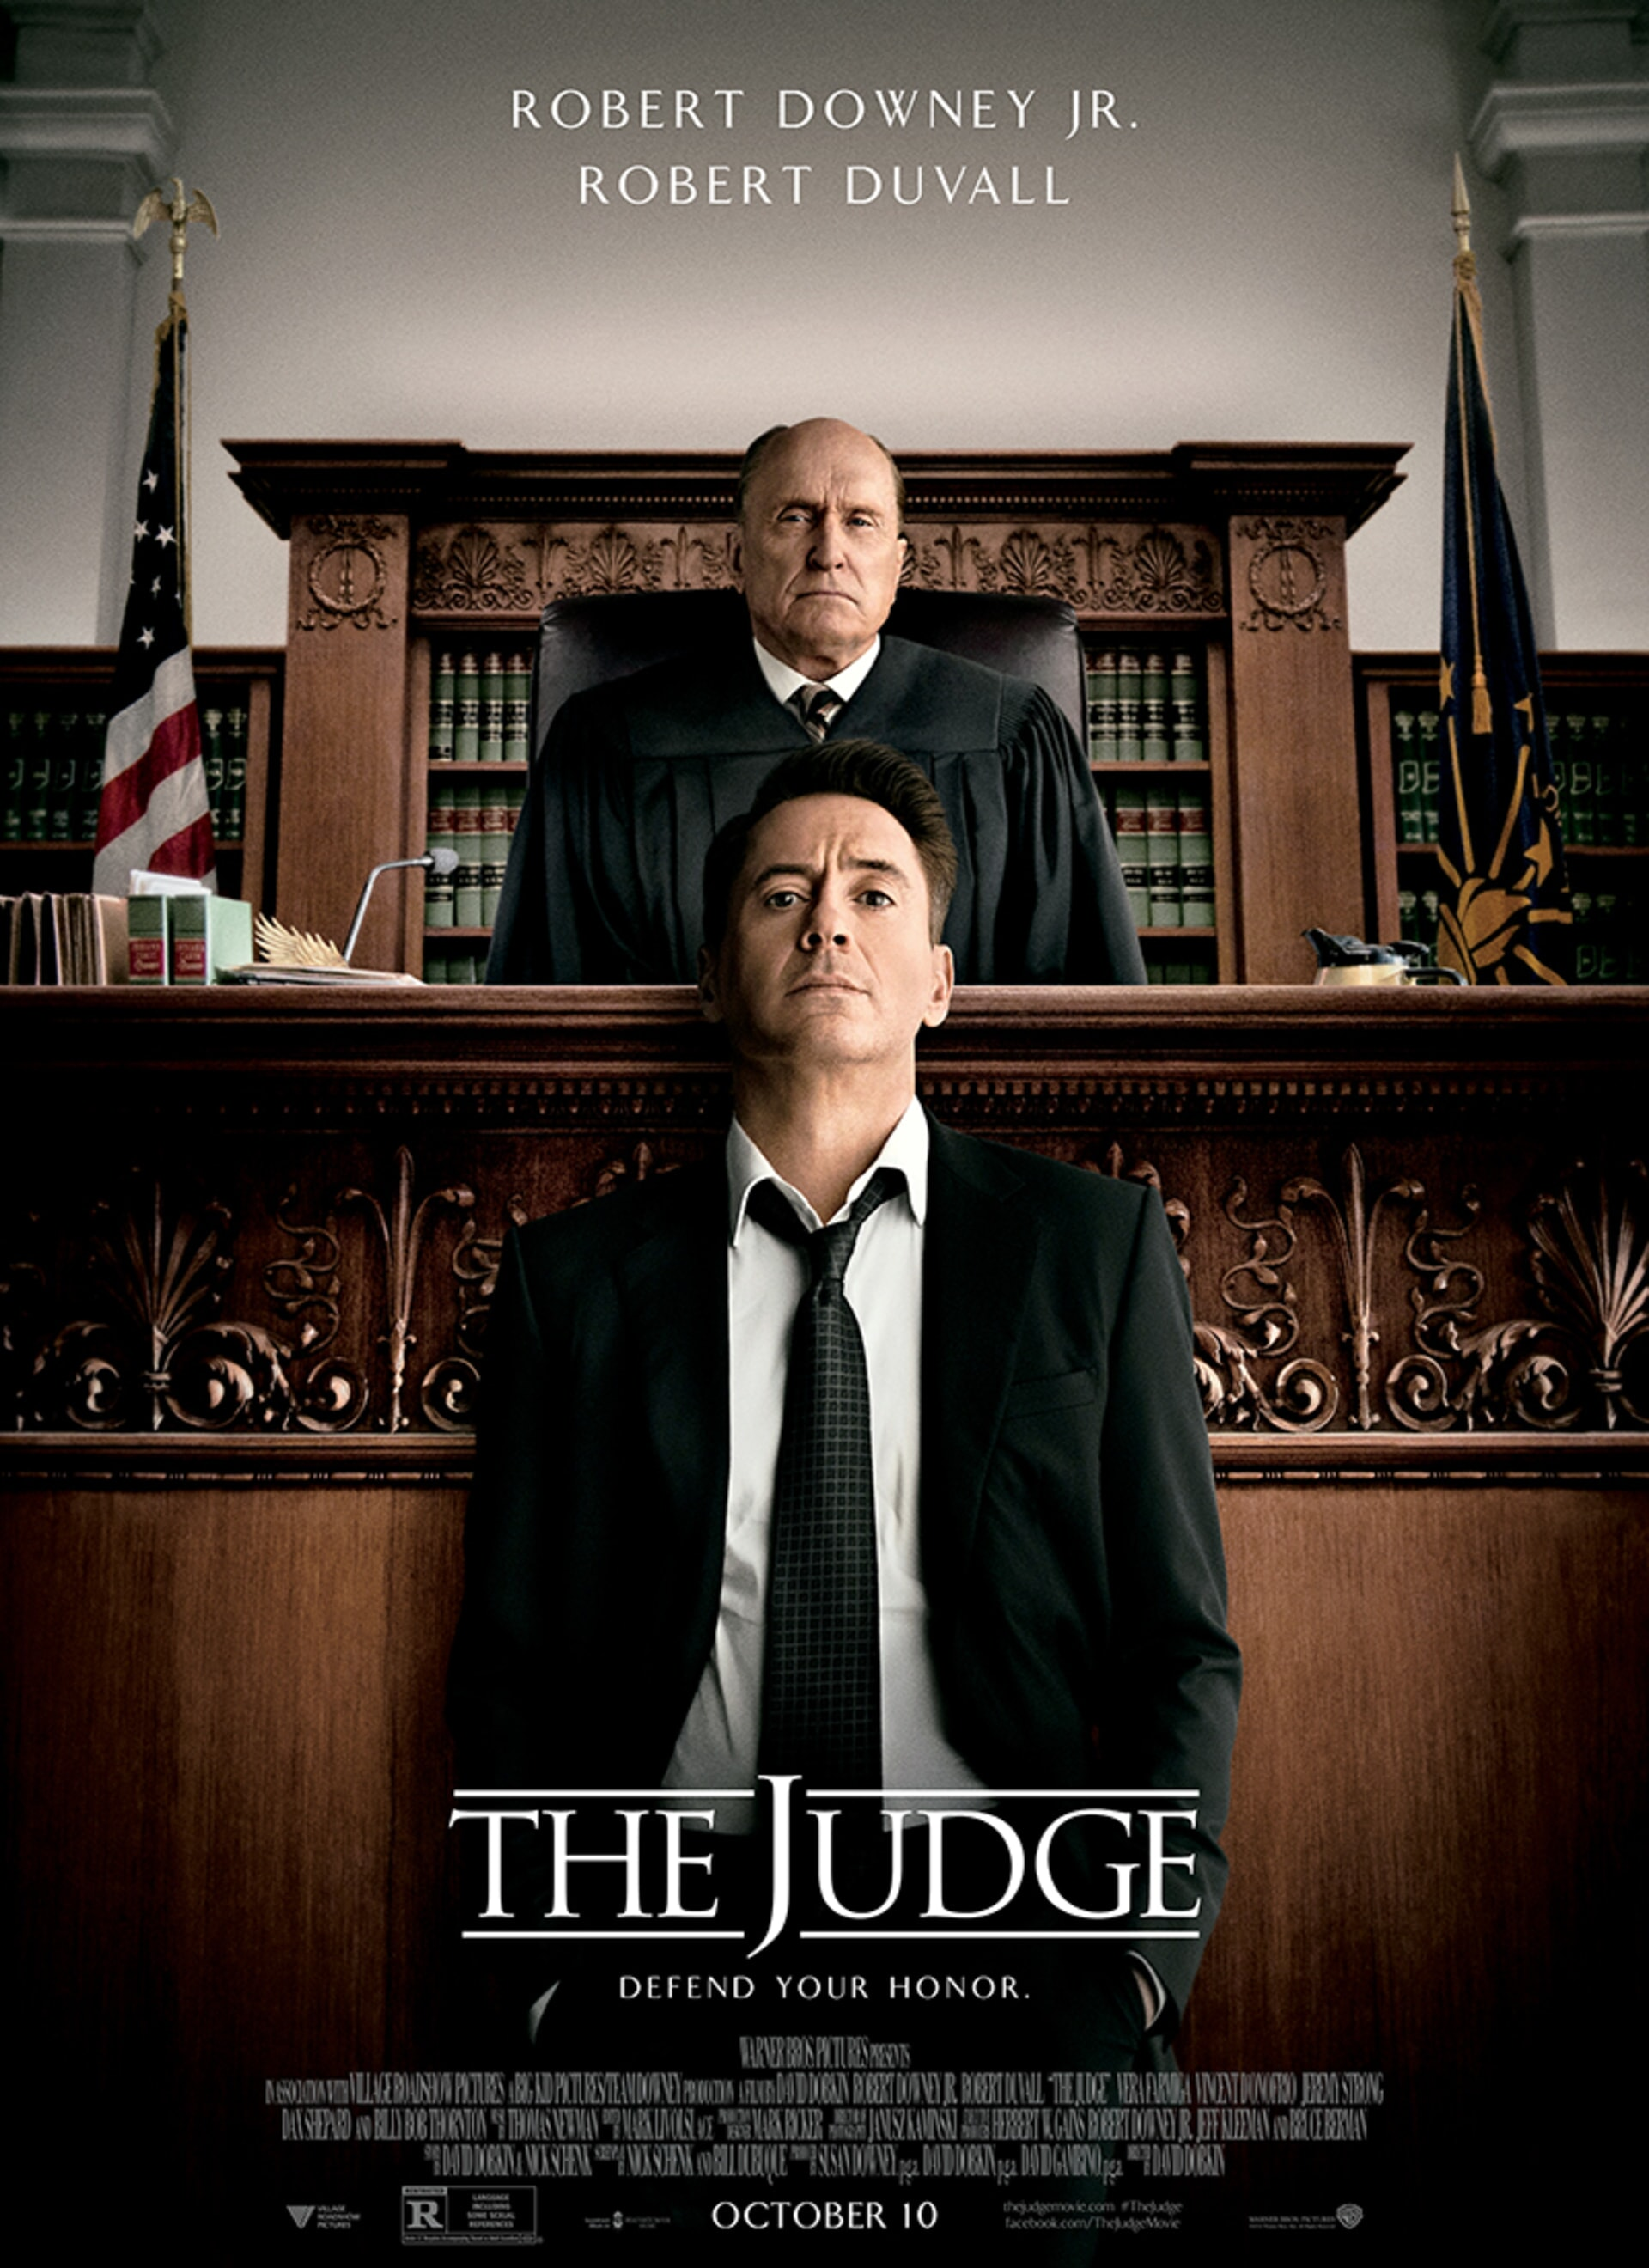 The Judge - Poster 1